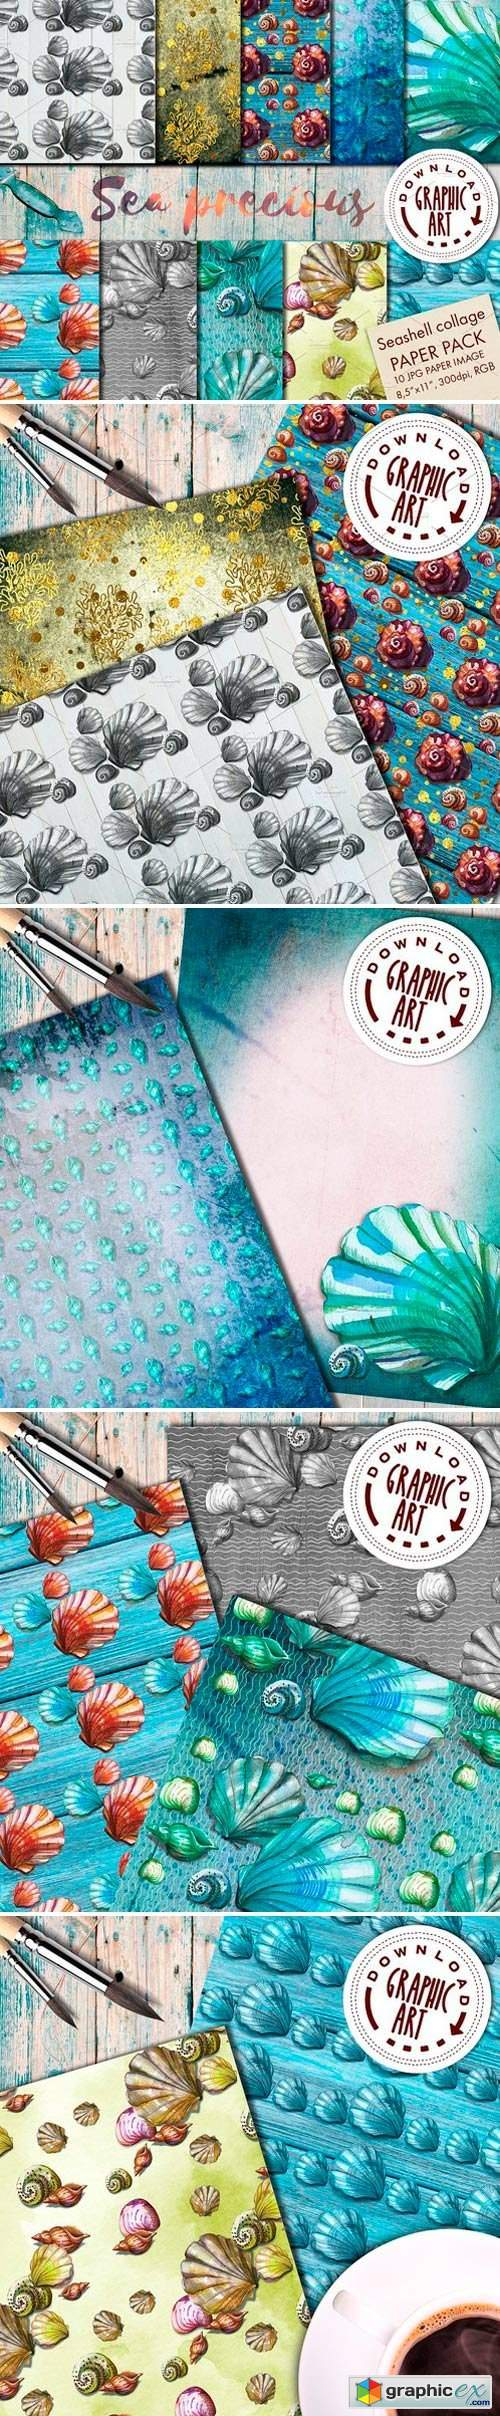 DIGITAL PAPER PATTERNS PACK 2403774